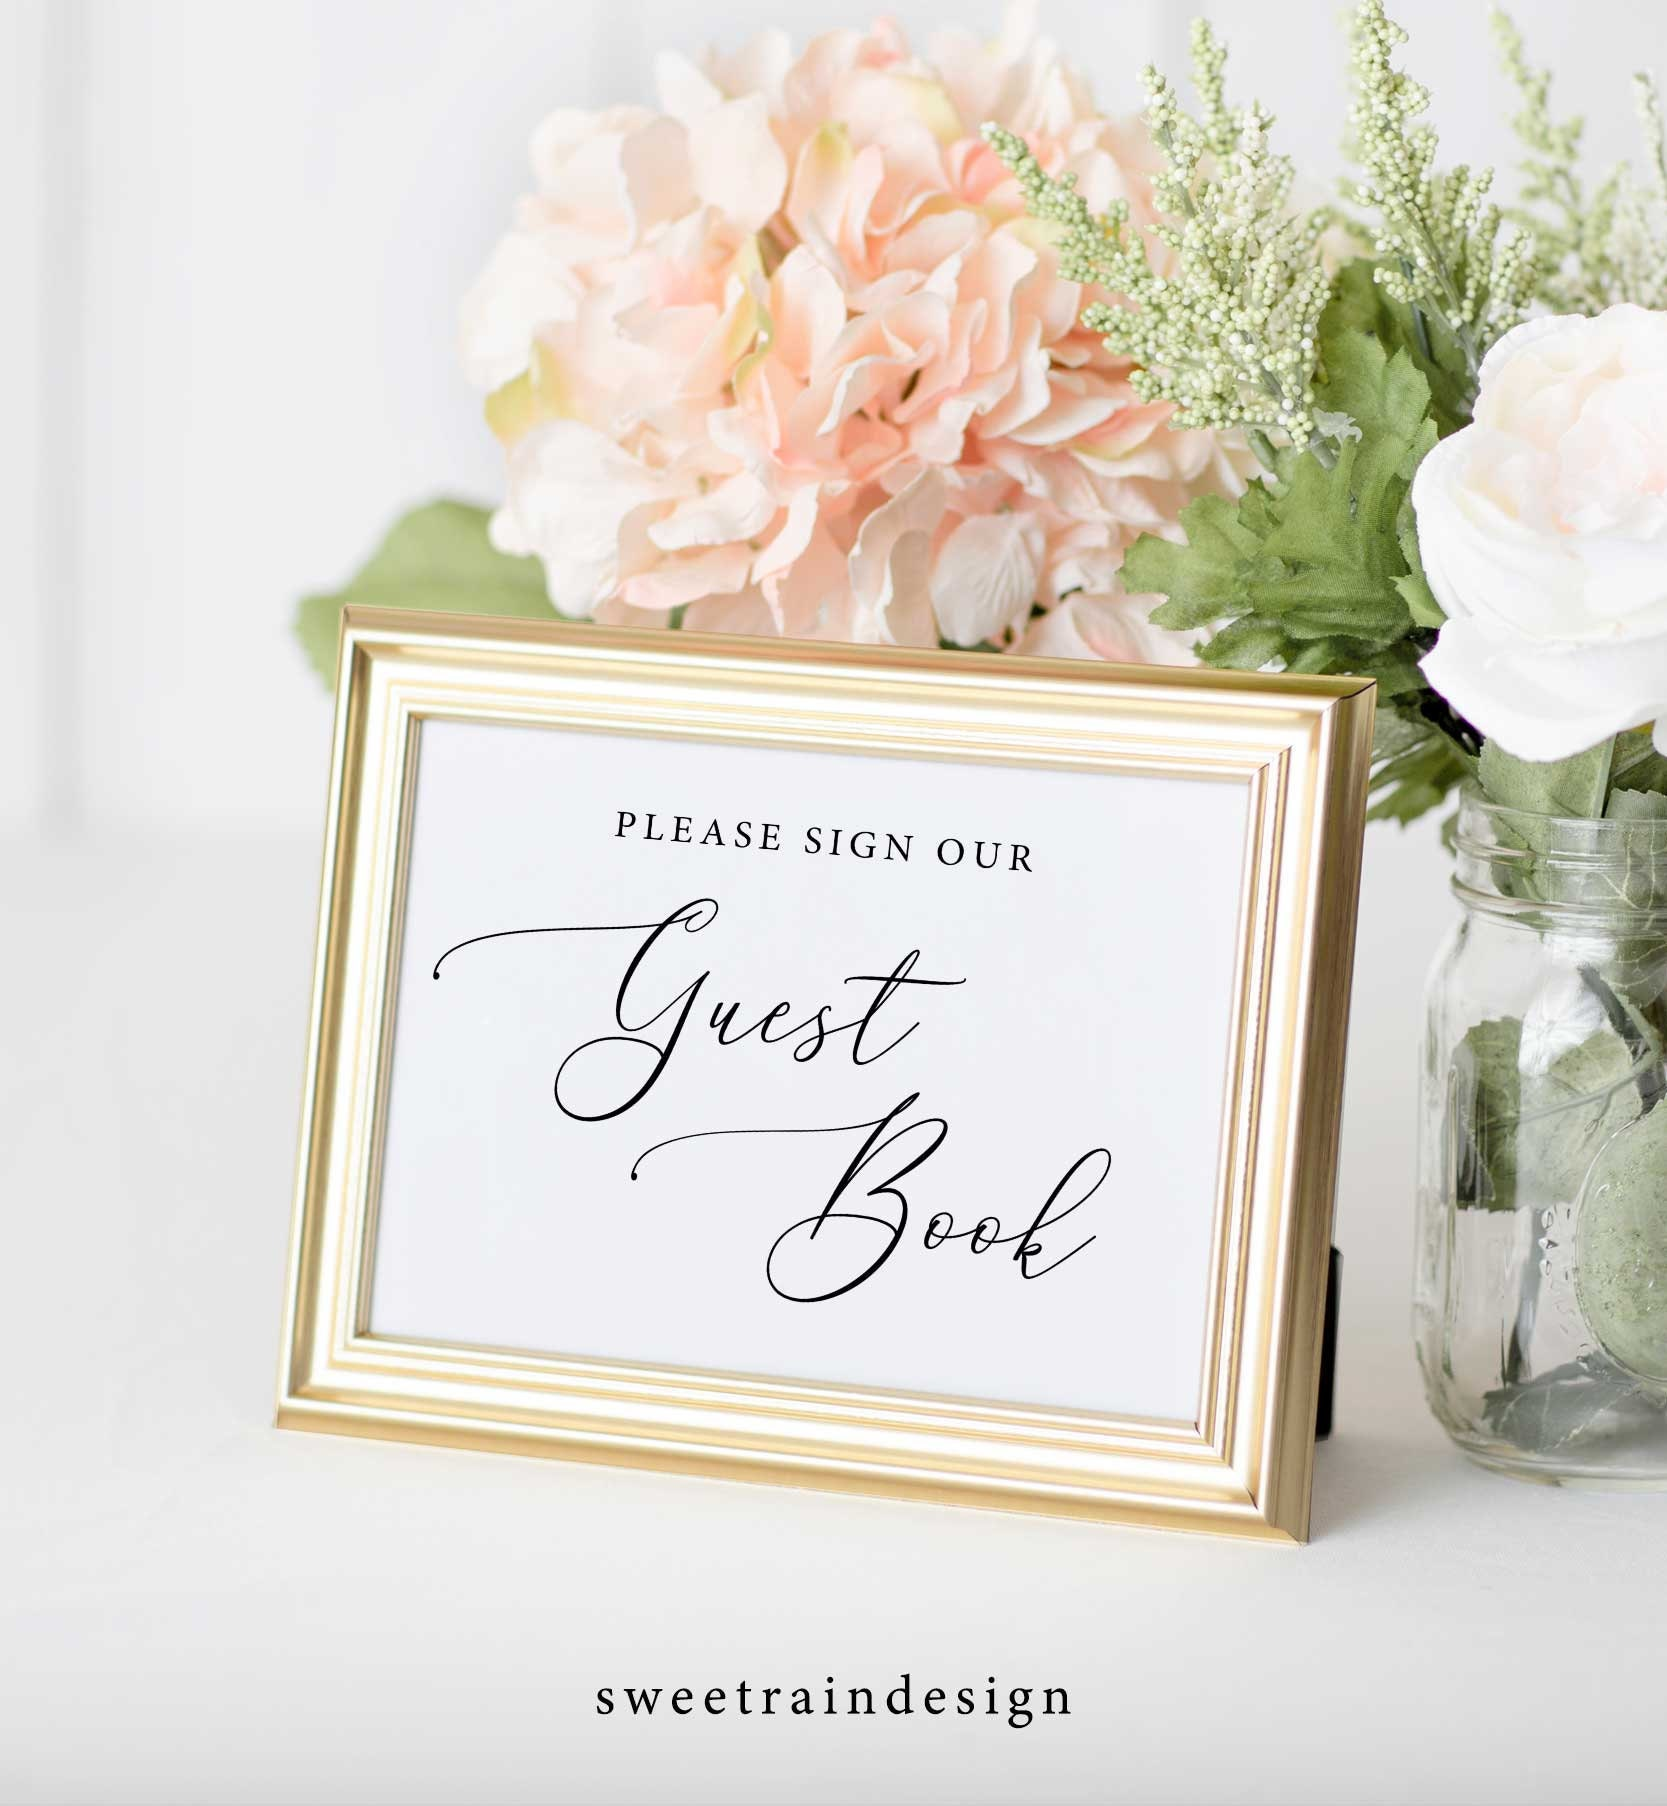 Rustic Wedding Please Sign Our Guest Book Board  Wood Sign Rustic Wedding Decor  Just Married Thank You Sign Country Wedding Photo Prop